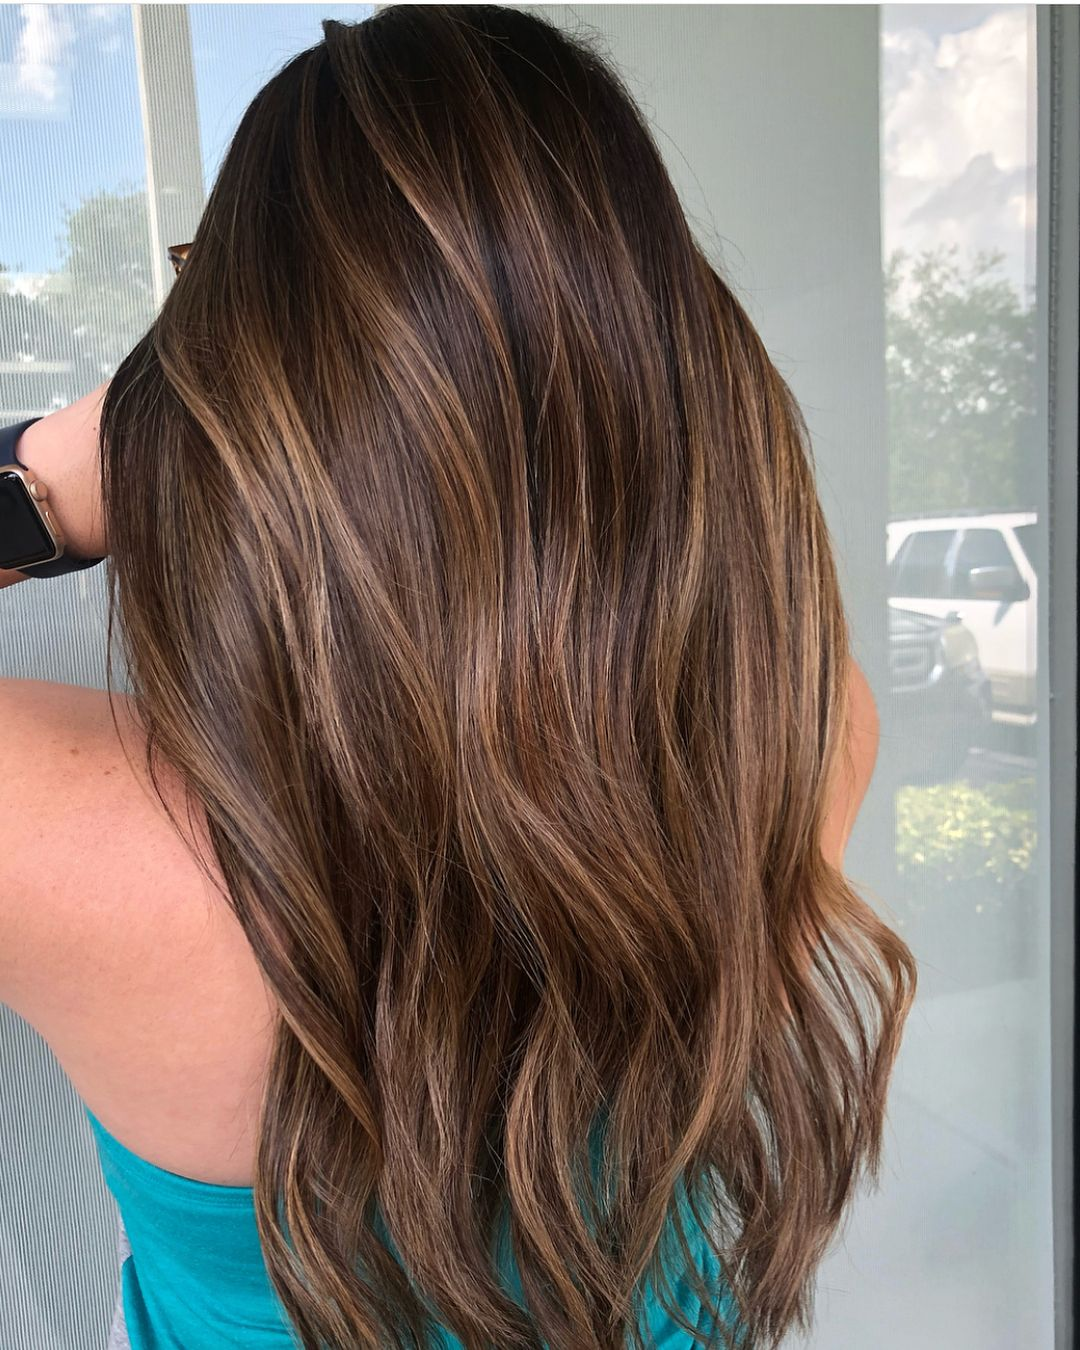 Image result for melted caramel hair trend